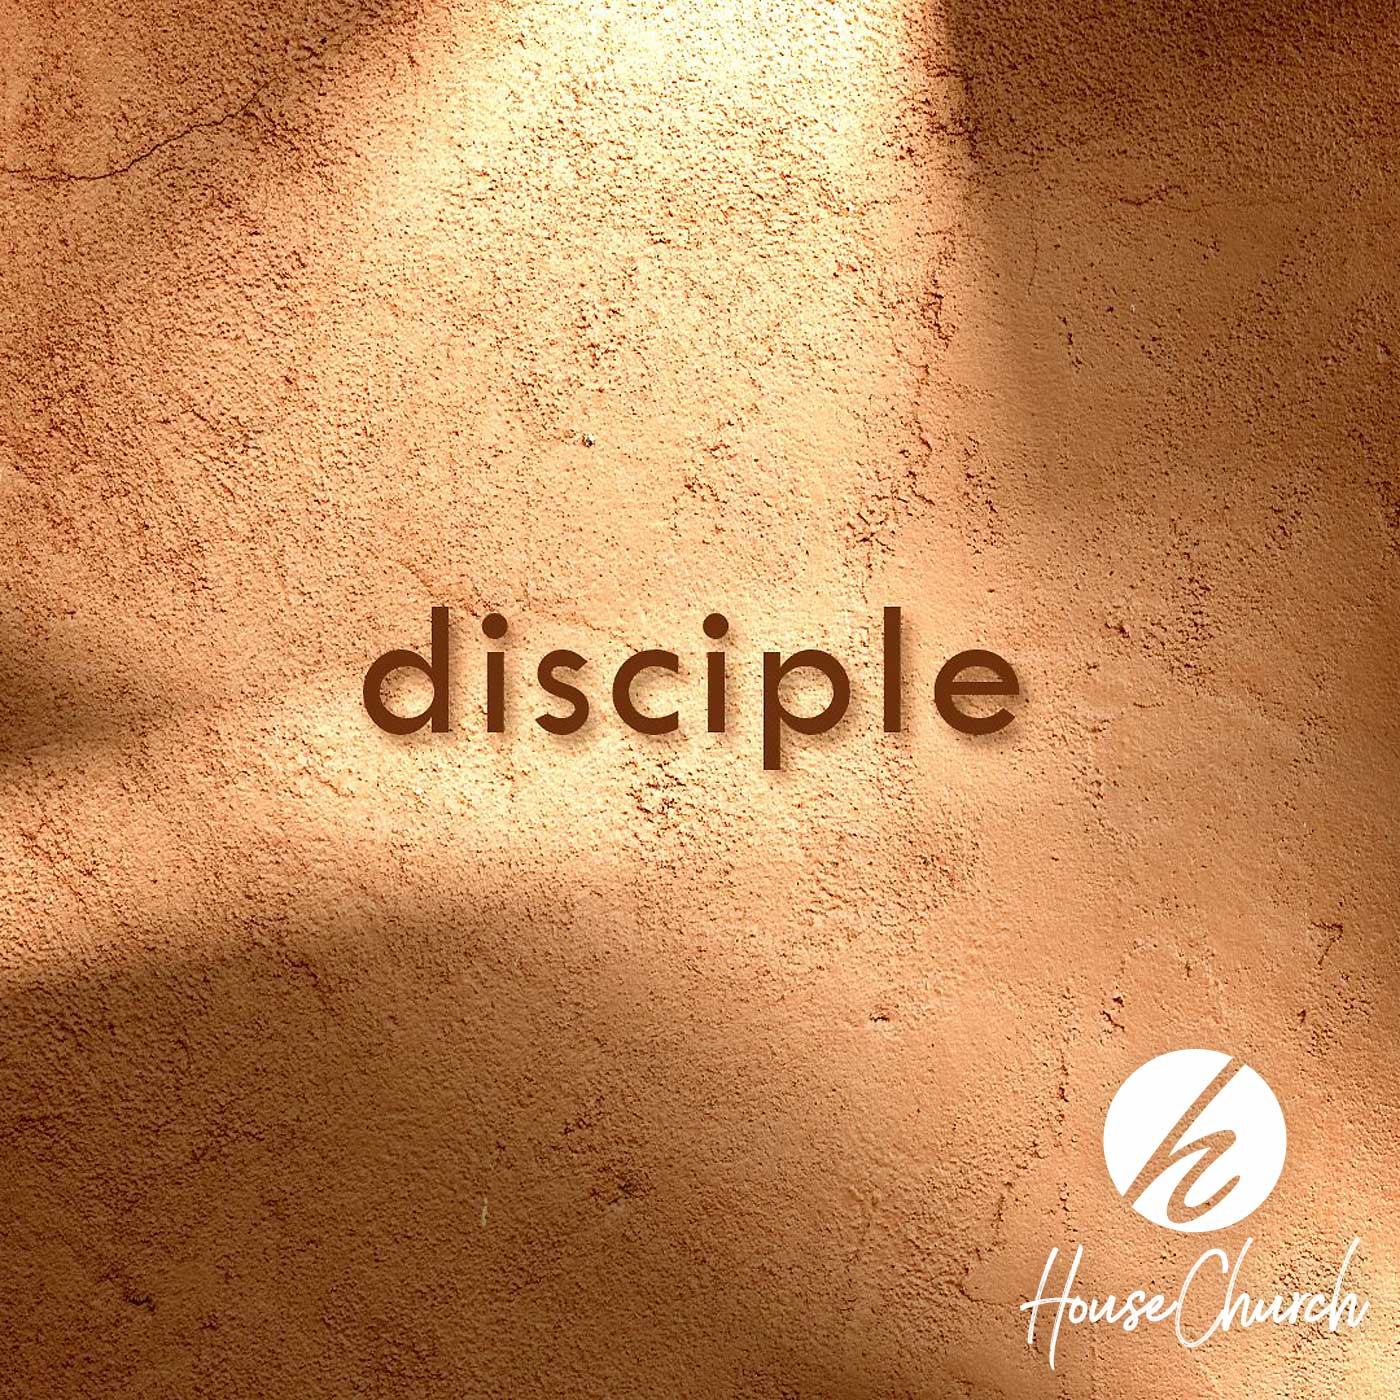 Disciple – Part 1